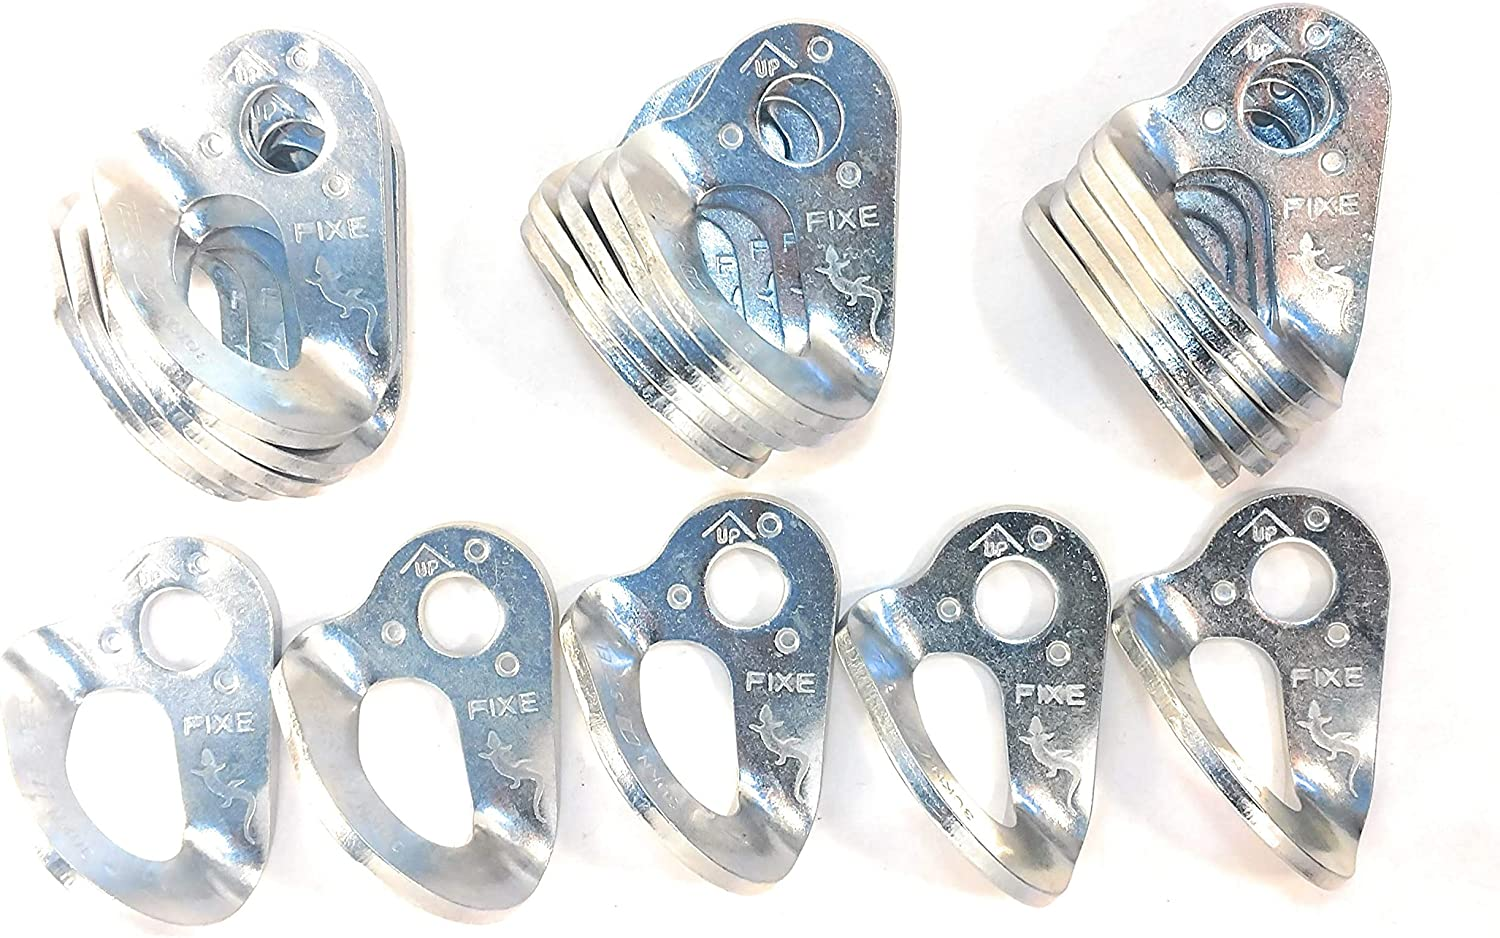 Fixe Stainless Steel Bolt Hanger CE//UIAA Certified